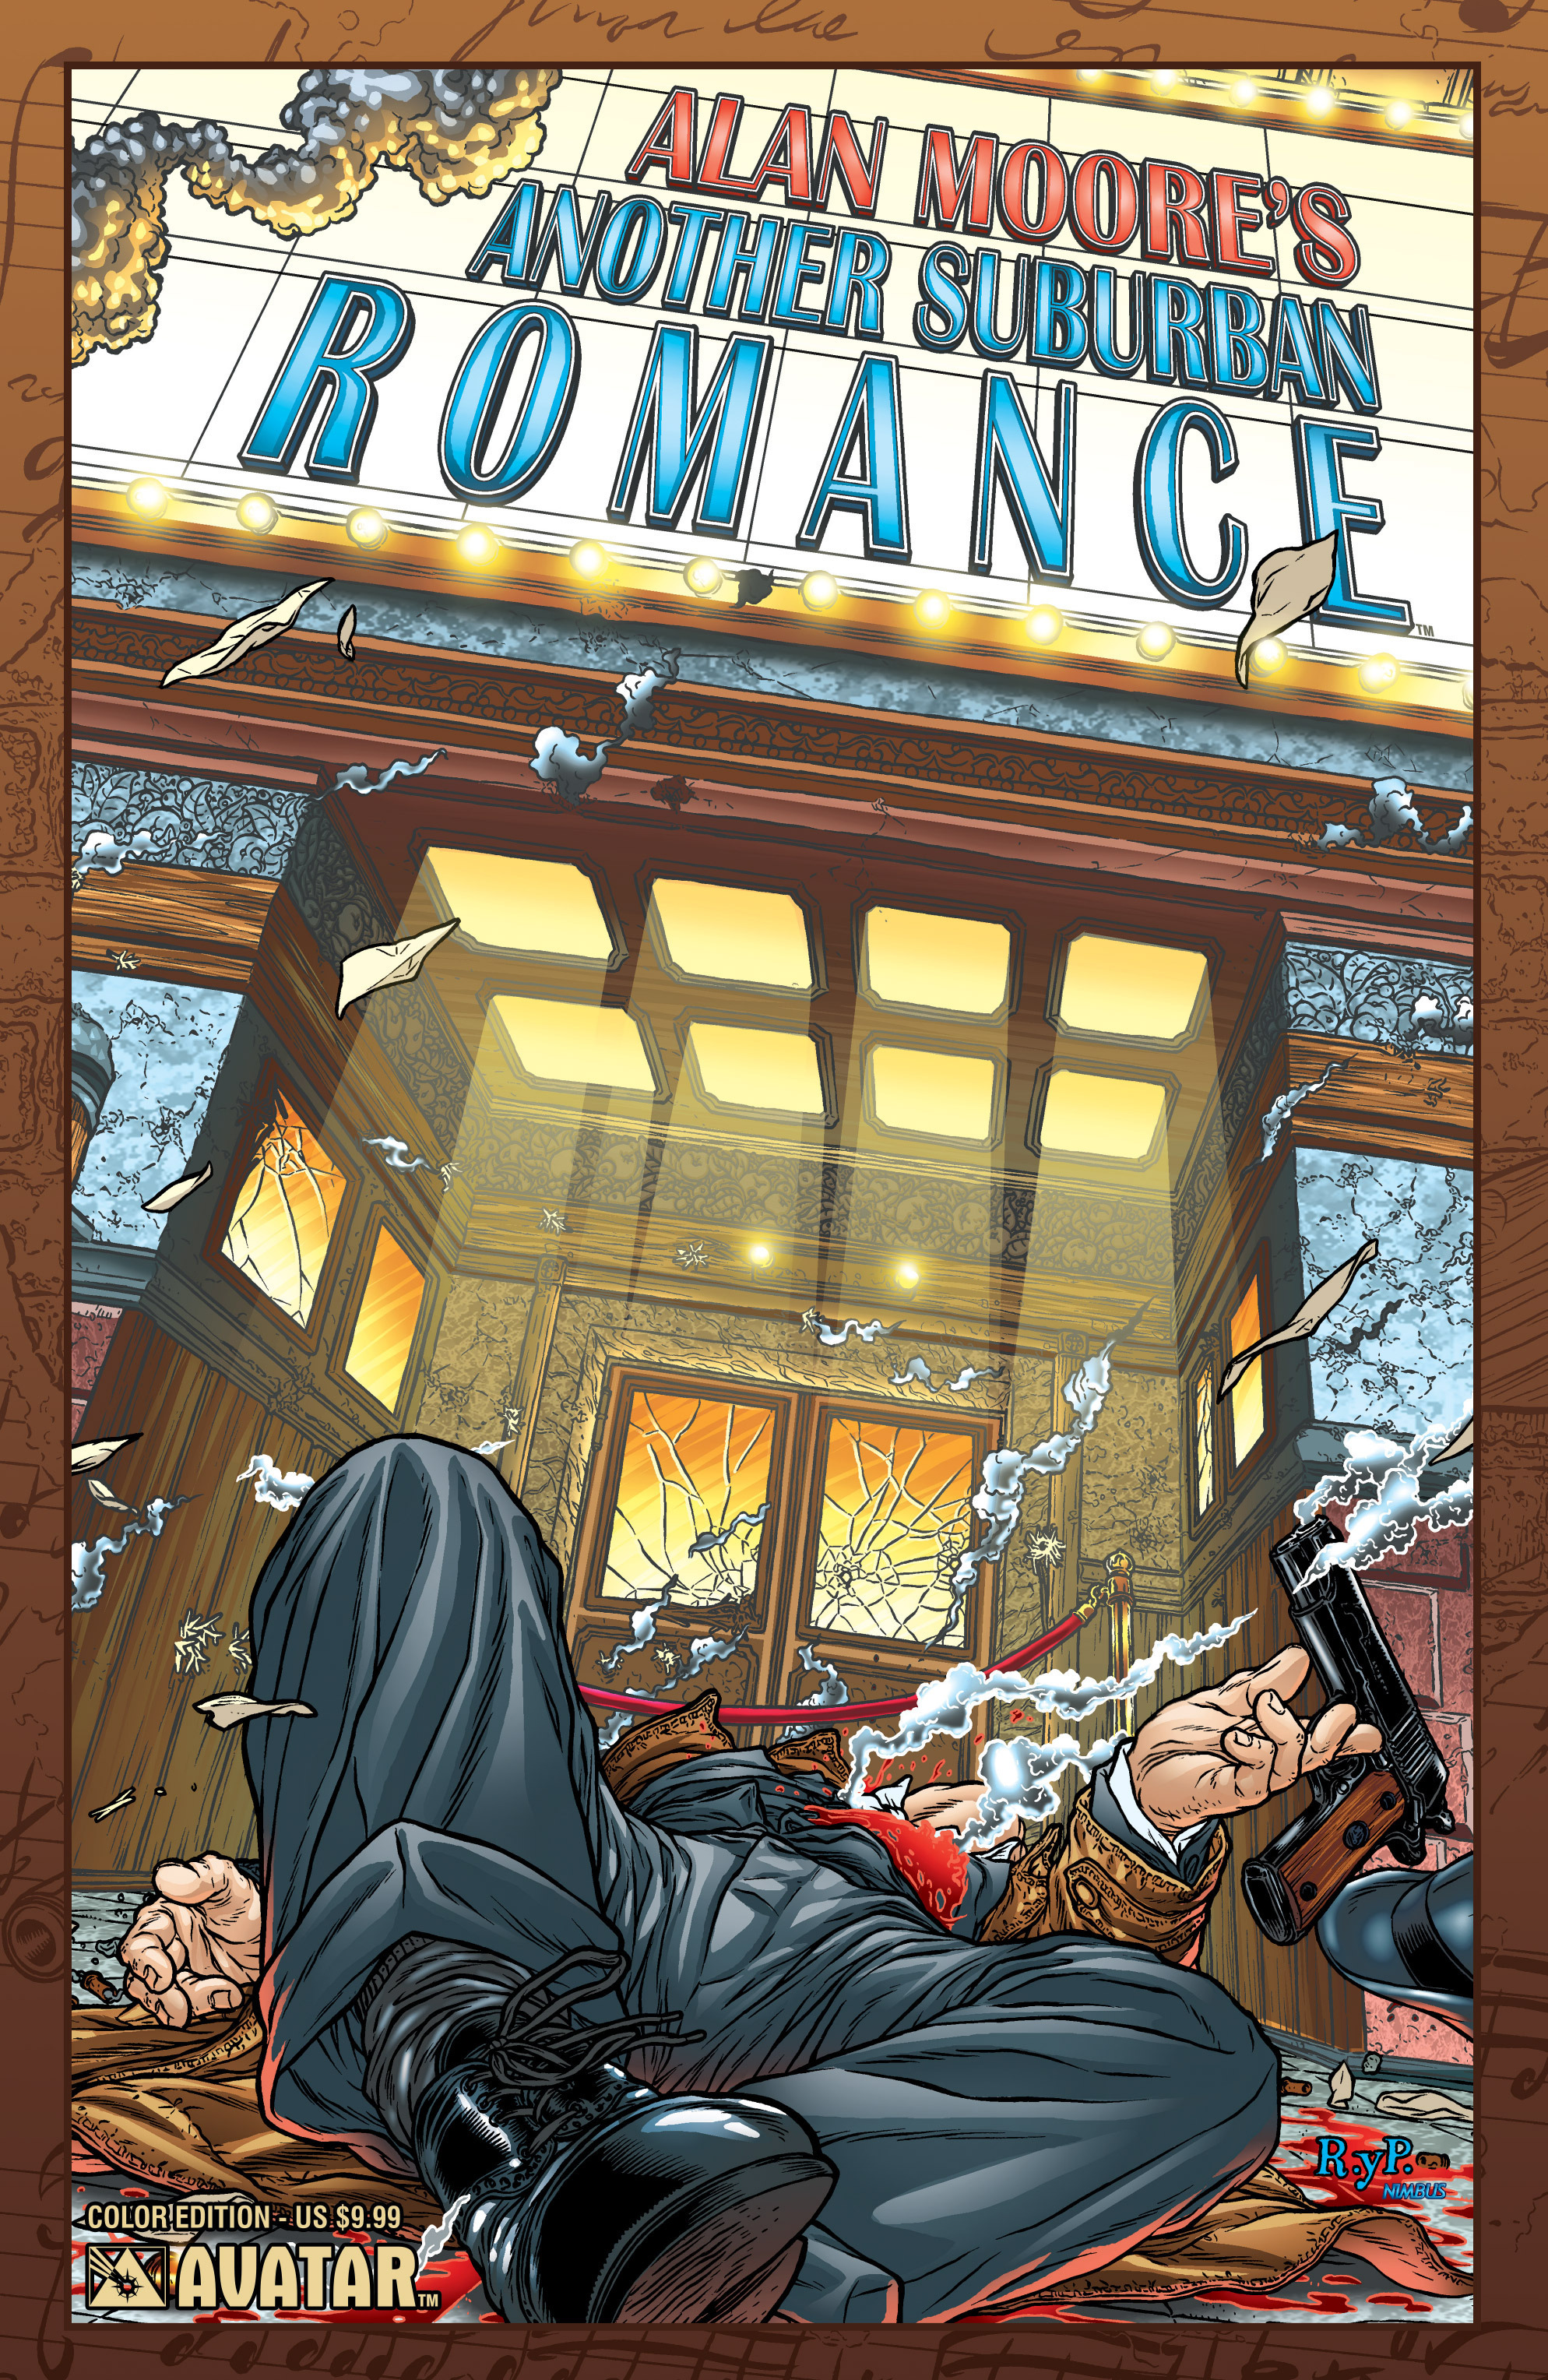 Read online Alan Moore's Another Suburban Romance comic -  Issue #Alan Moore's Another Suburban Romance Full - 1